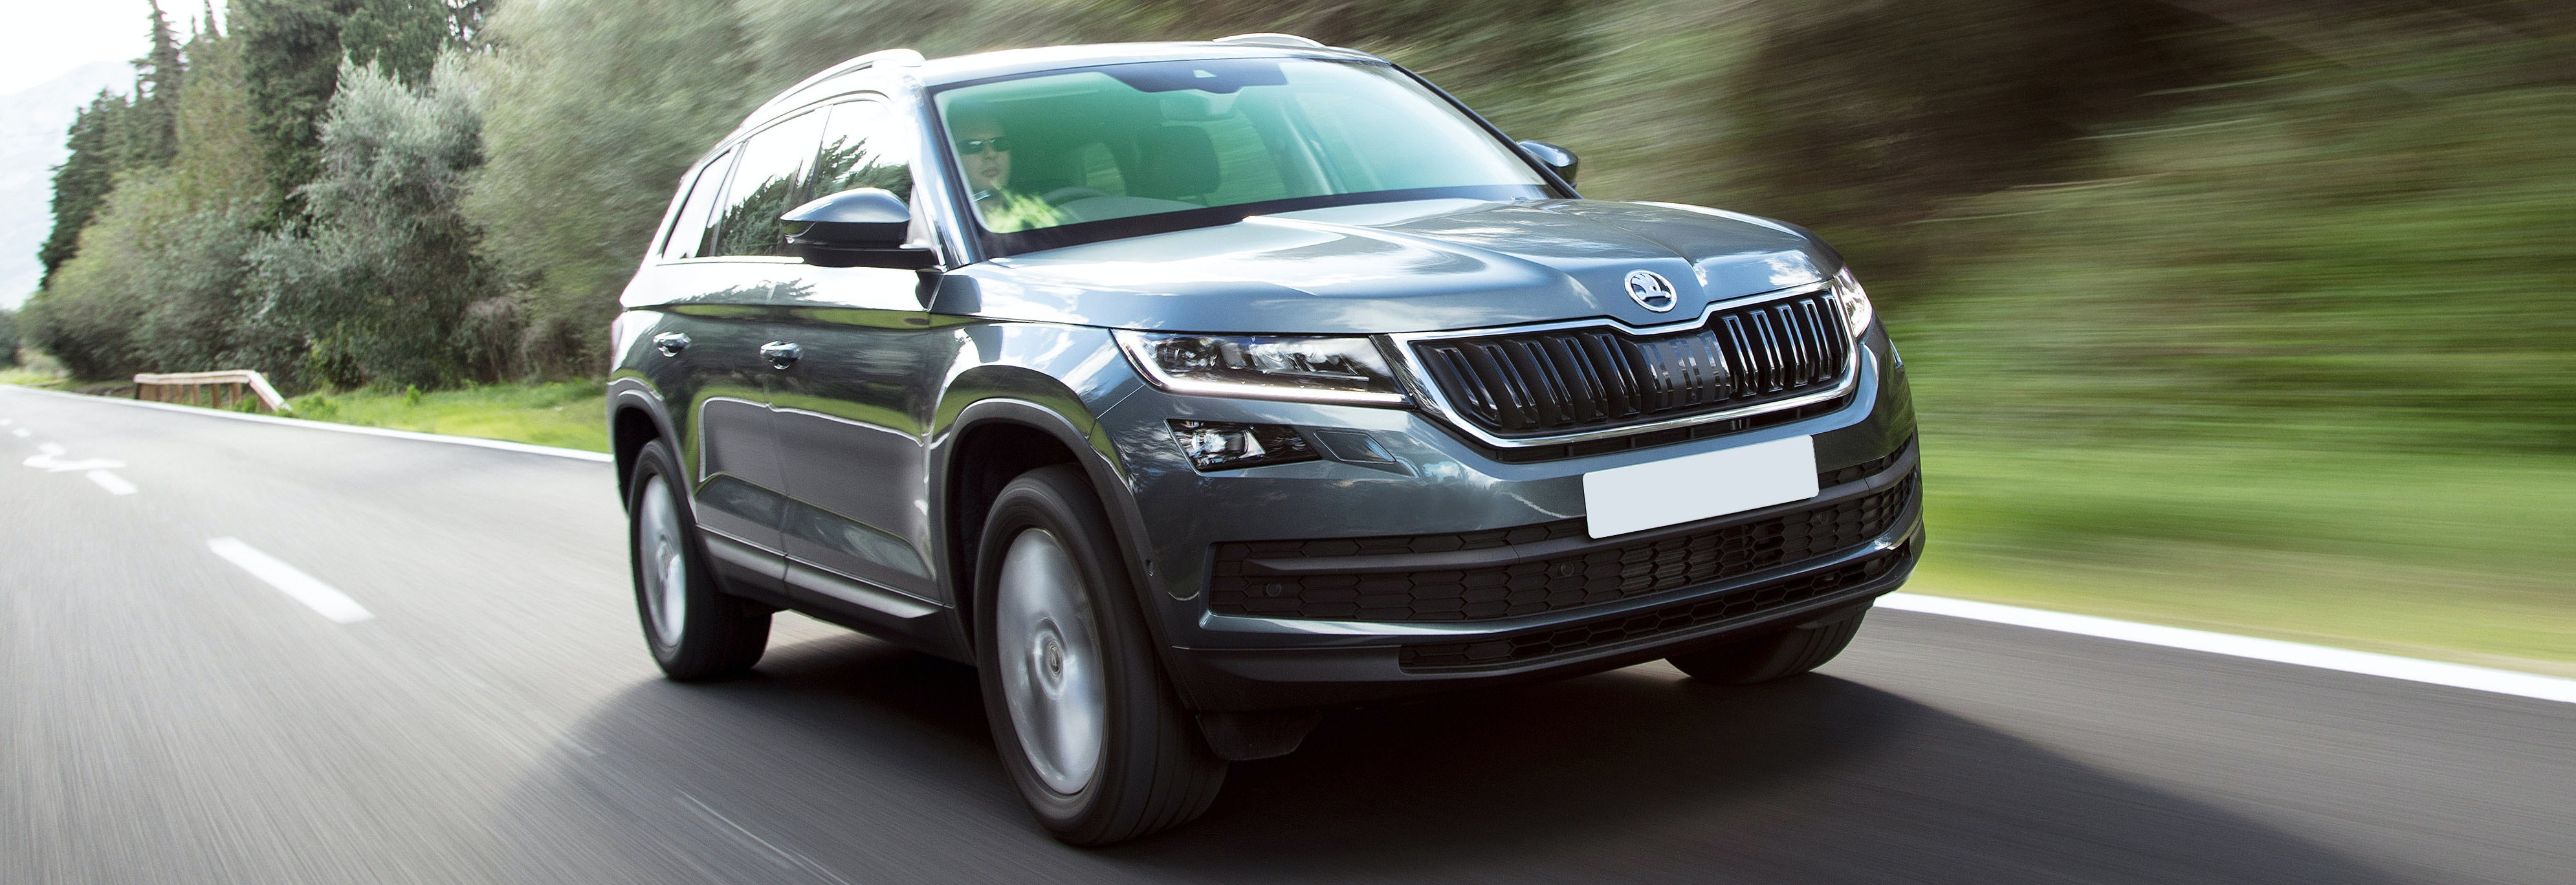 Grey Skoda Kodiaq driving, viewed from the front